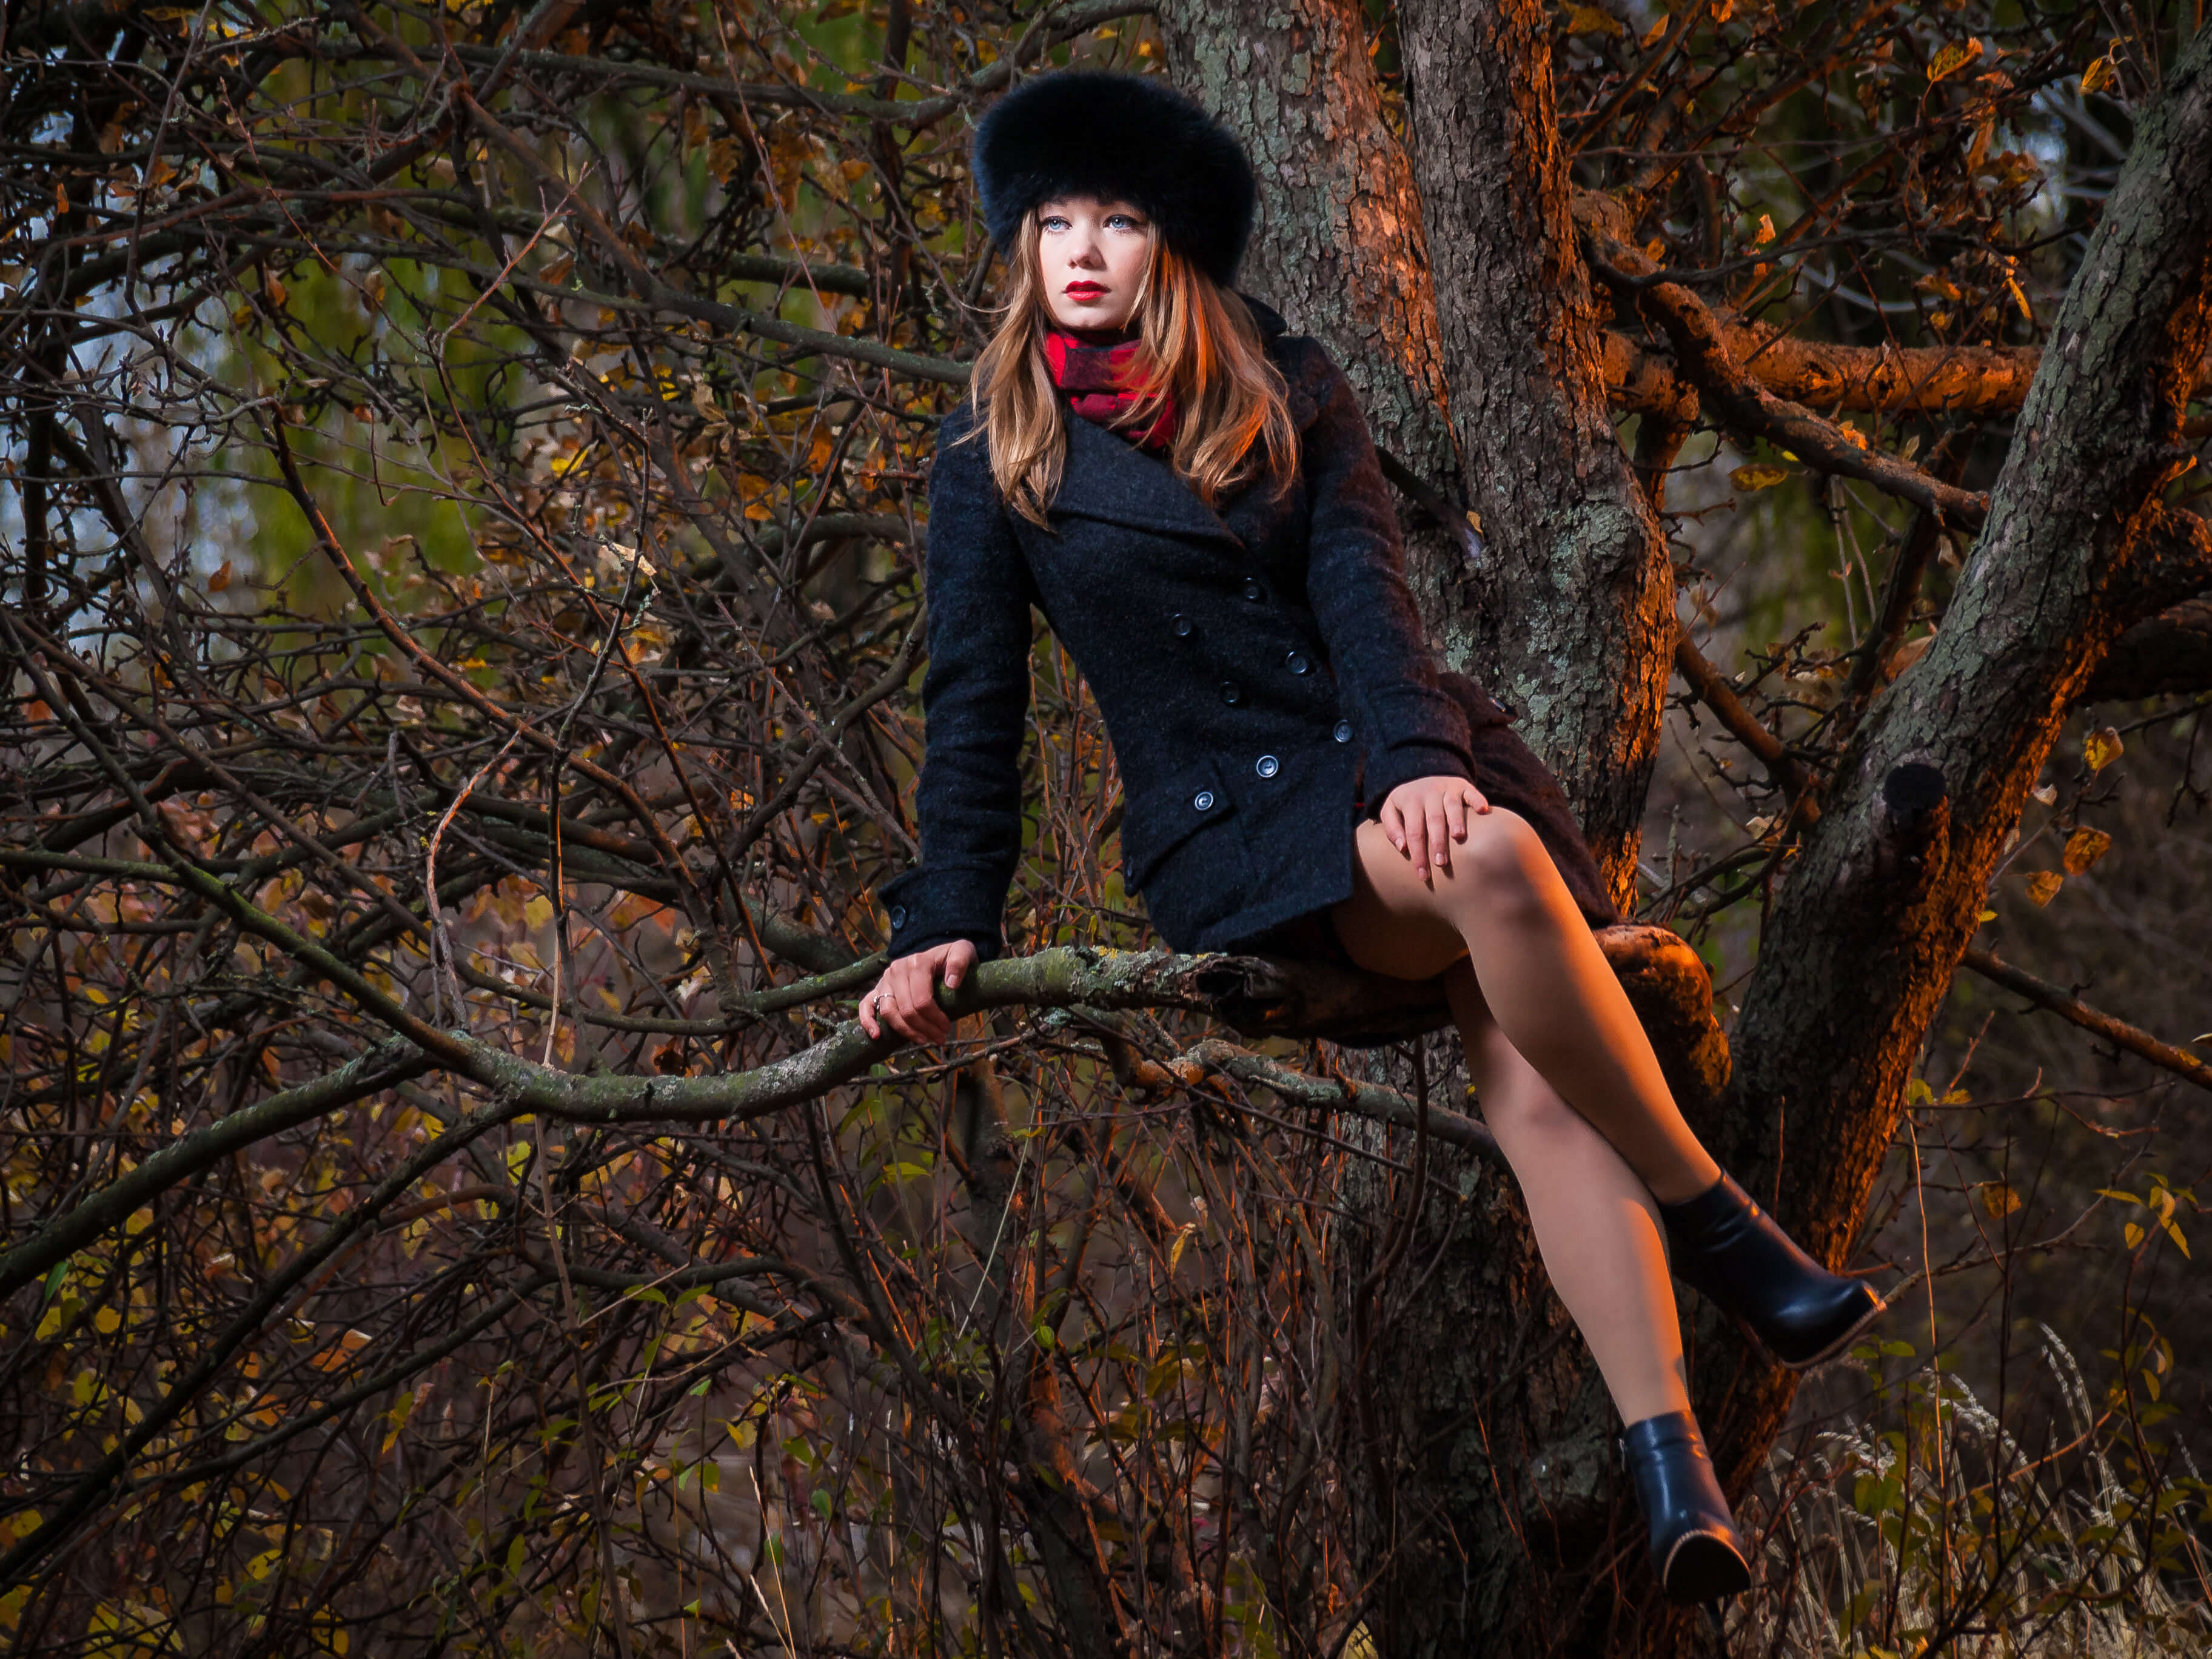 Commercial fashion photography full growth frame model girl trees autumn forest branches boots beauty commercial photo coat this photo made by Fantastic Imago Branding, Advertising and Consulting Agency